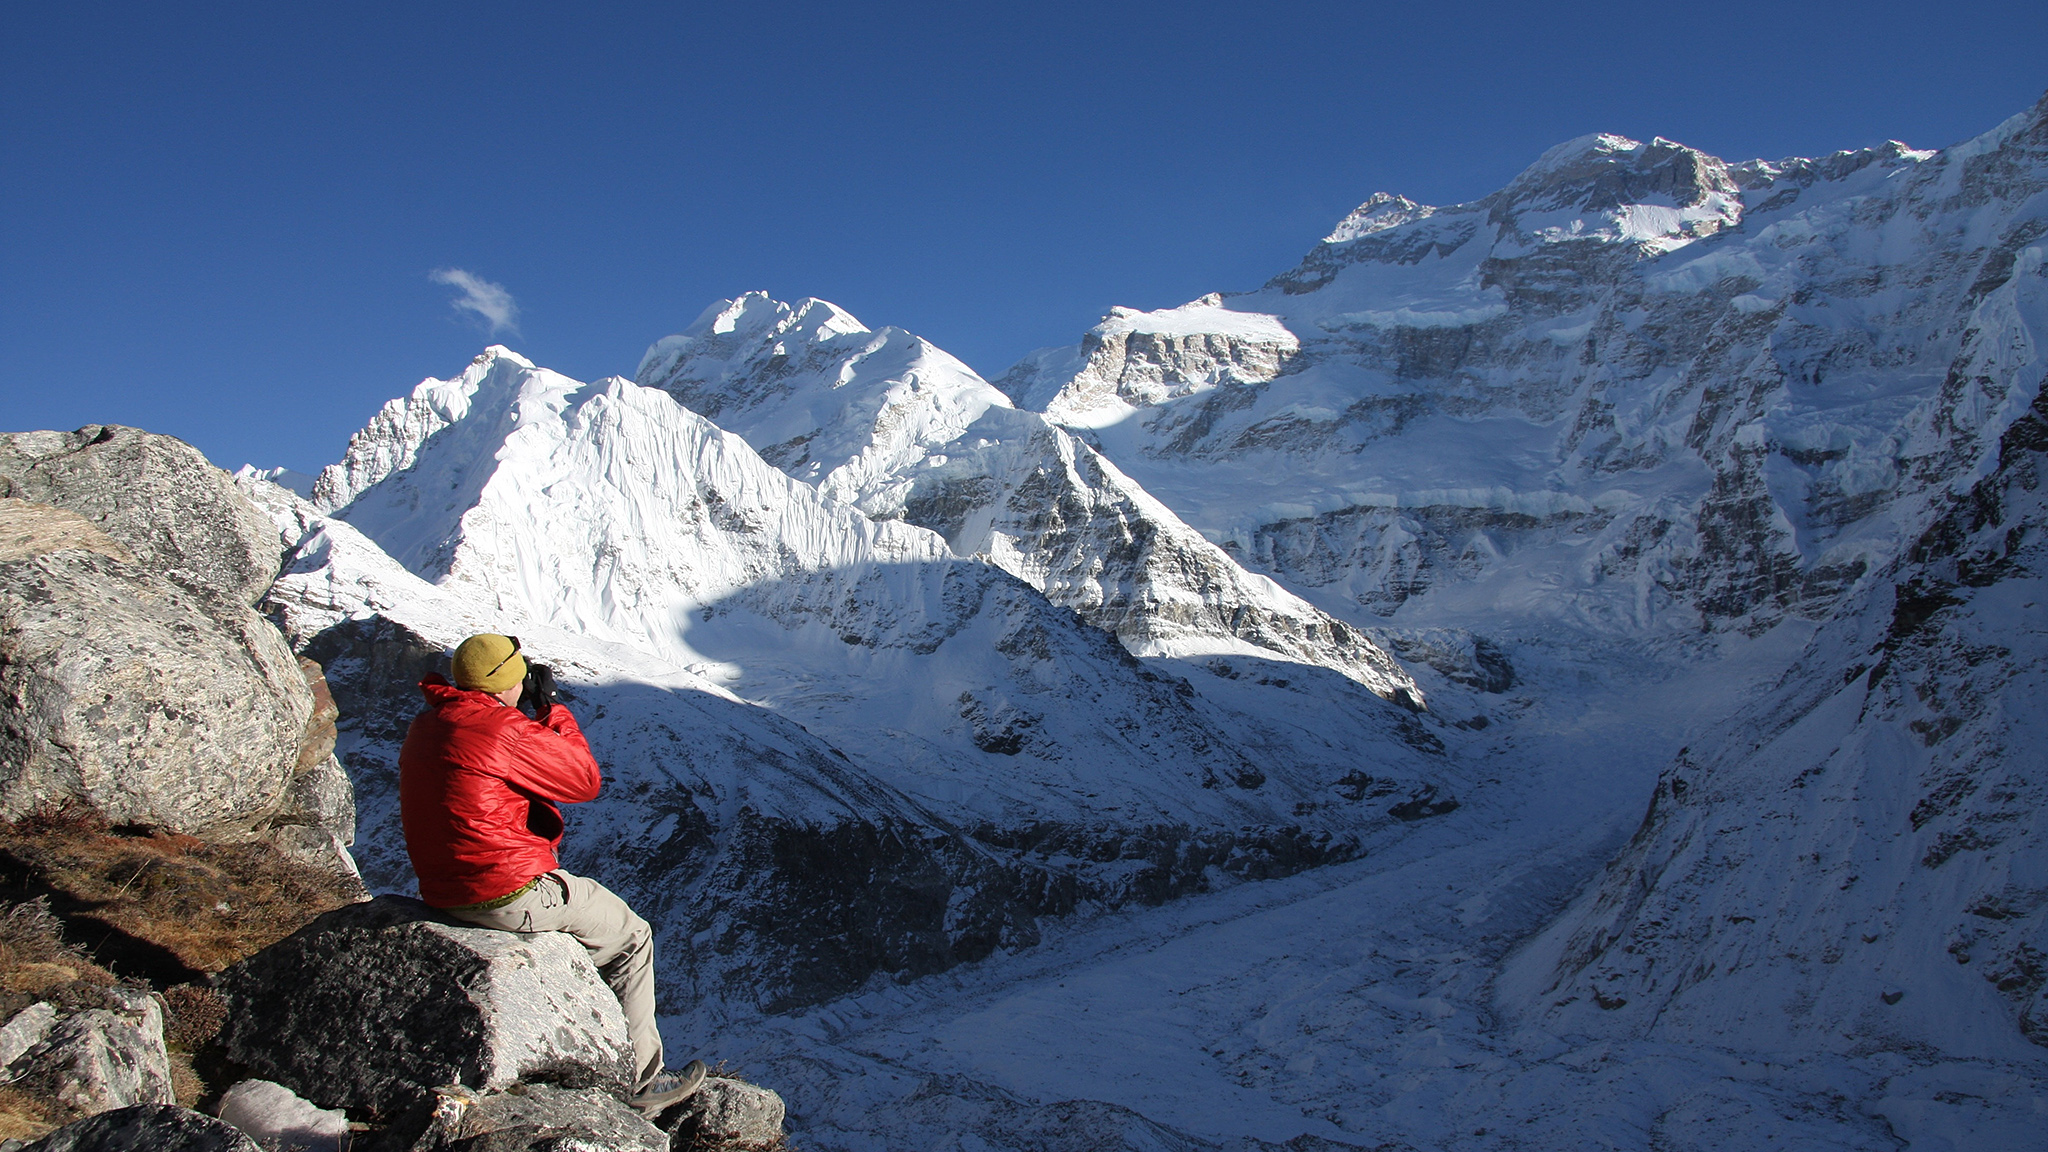 Onwards and upwards: what is attracting pensioners to scale the Himalayas?